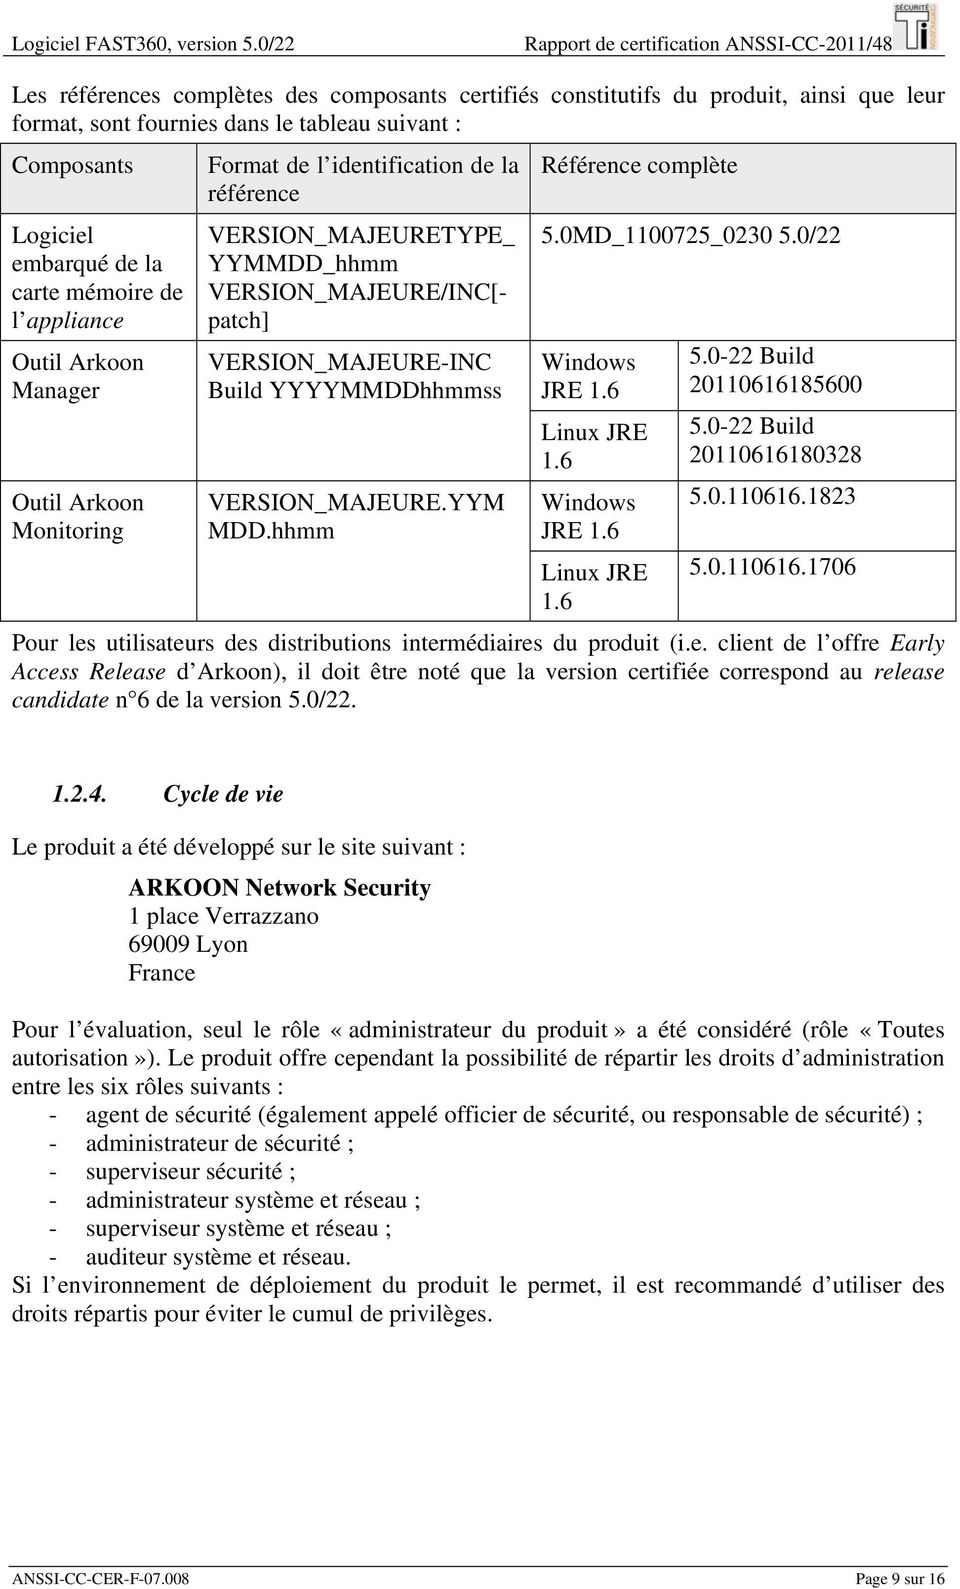 Logiciel embarqué de la carte mémoire de l appliance Outil Arkoon Manager Outil Arkoon Monitoring Format de l identification de la référence VERSION_MAJEURETYPE_ YYMMDD_hhmm VERSION_MAJEURE/INC[-